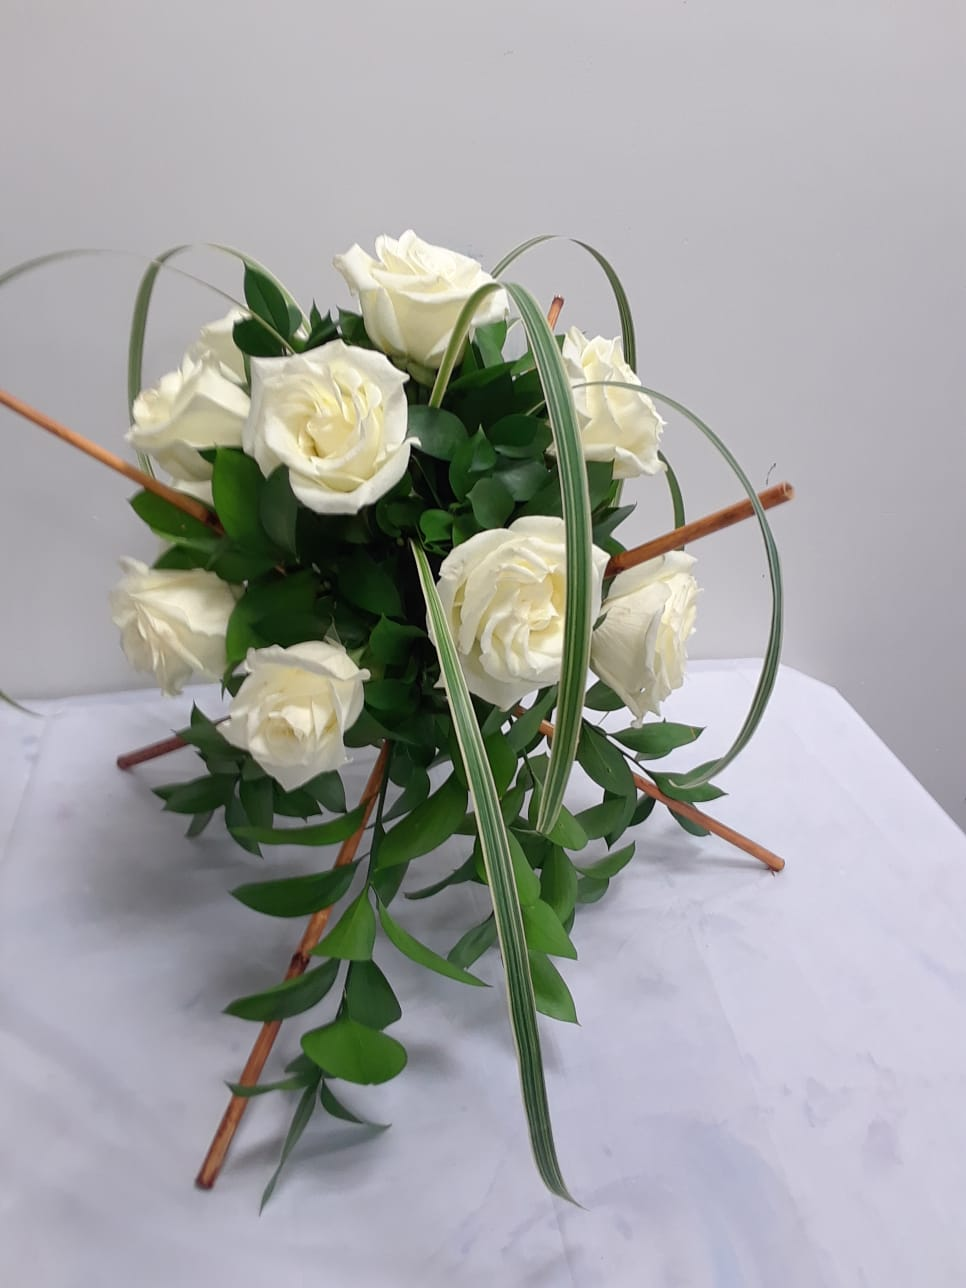 Roses and Bamboo: White Roses